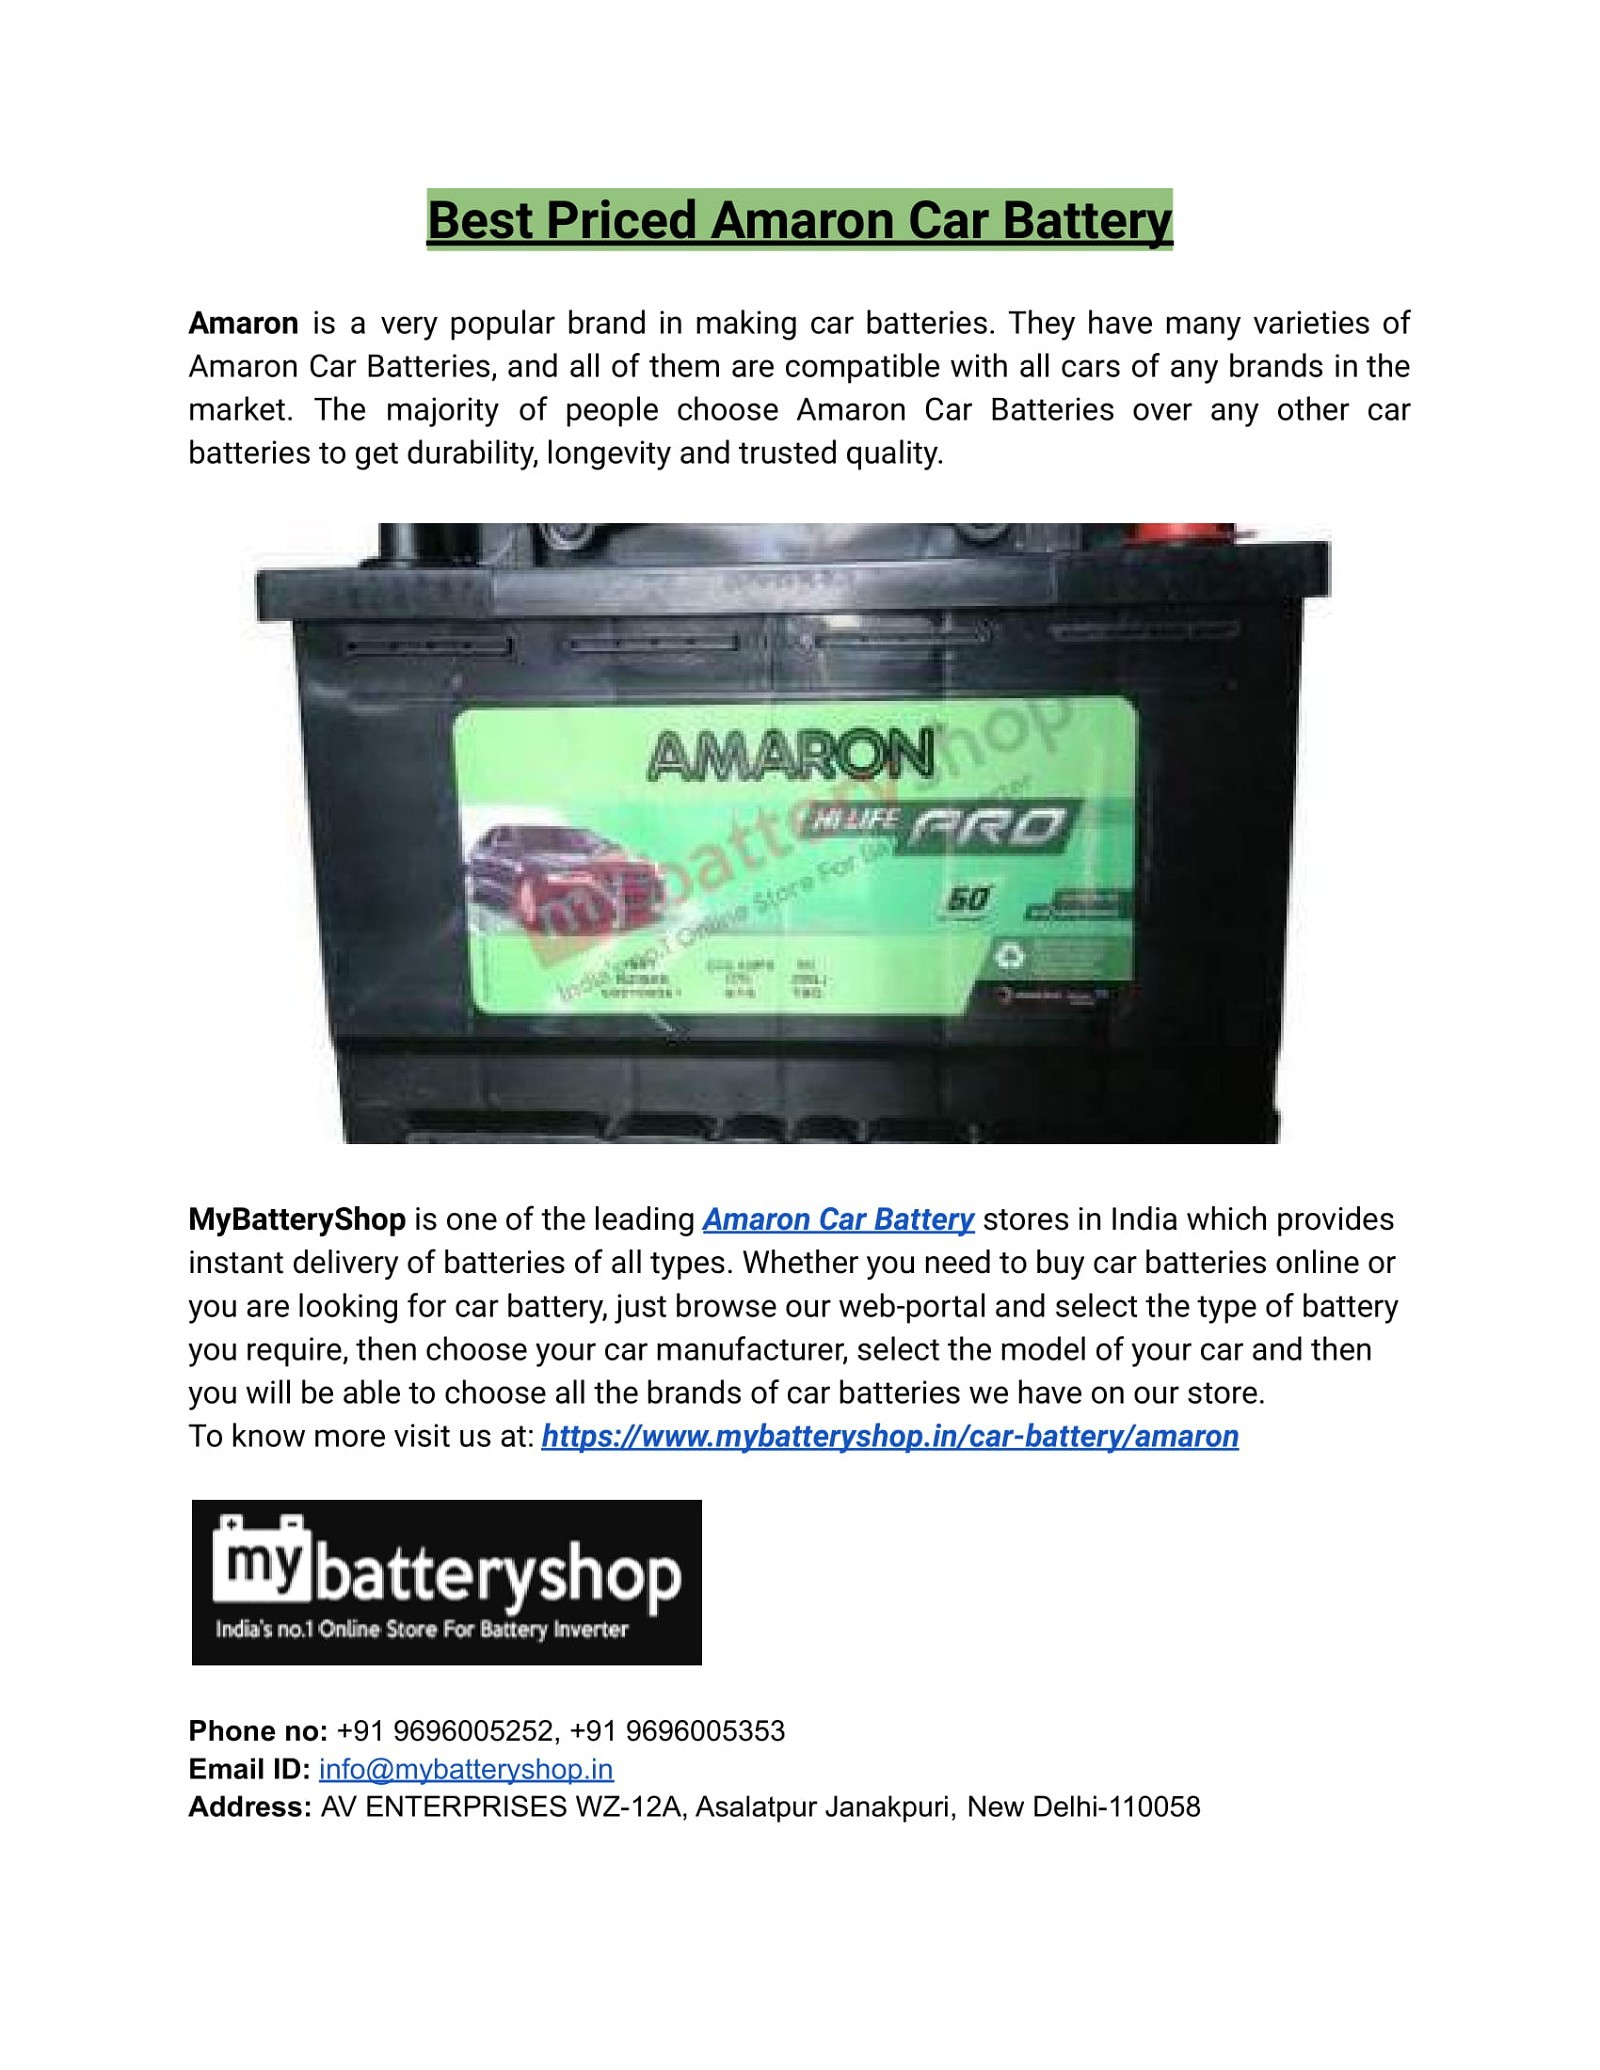 Best Priced Amaron Car Battery